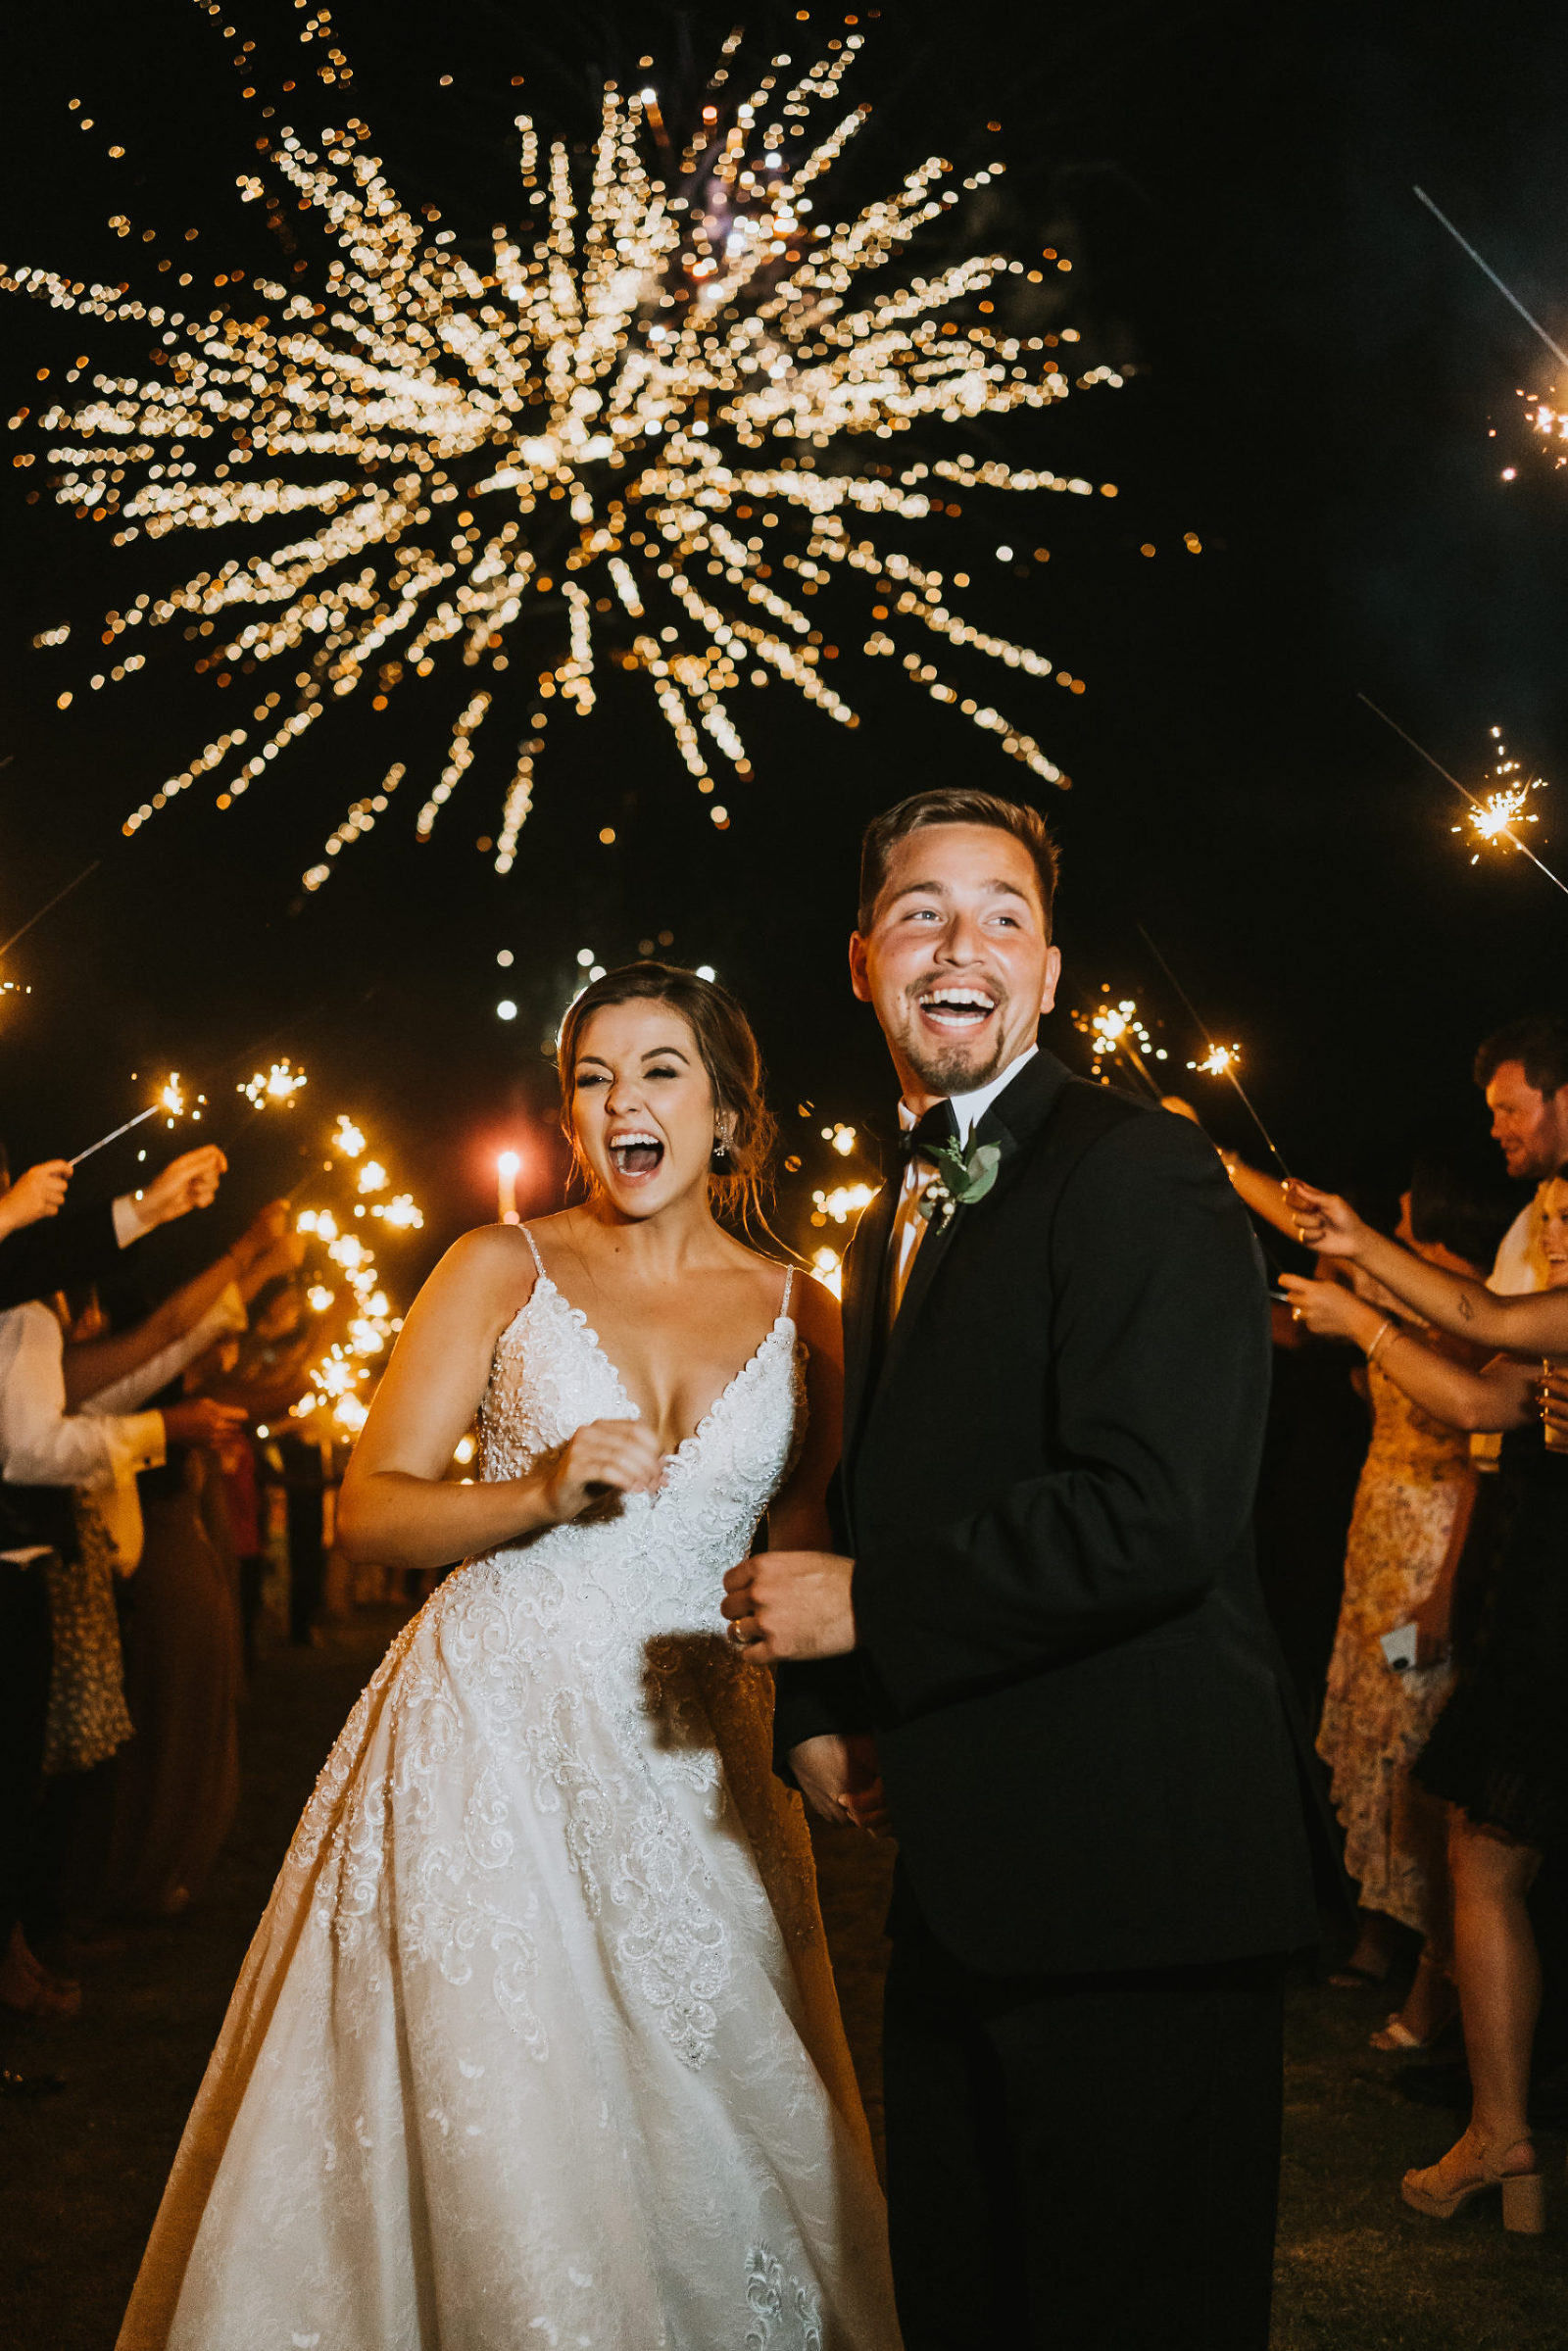 bride and groom laughing with joy during sparkler exit with fireworks